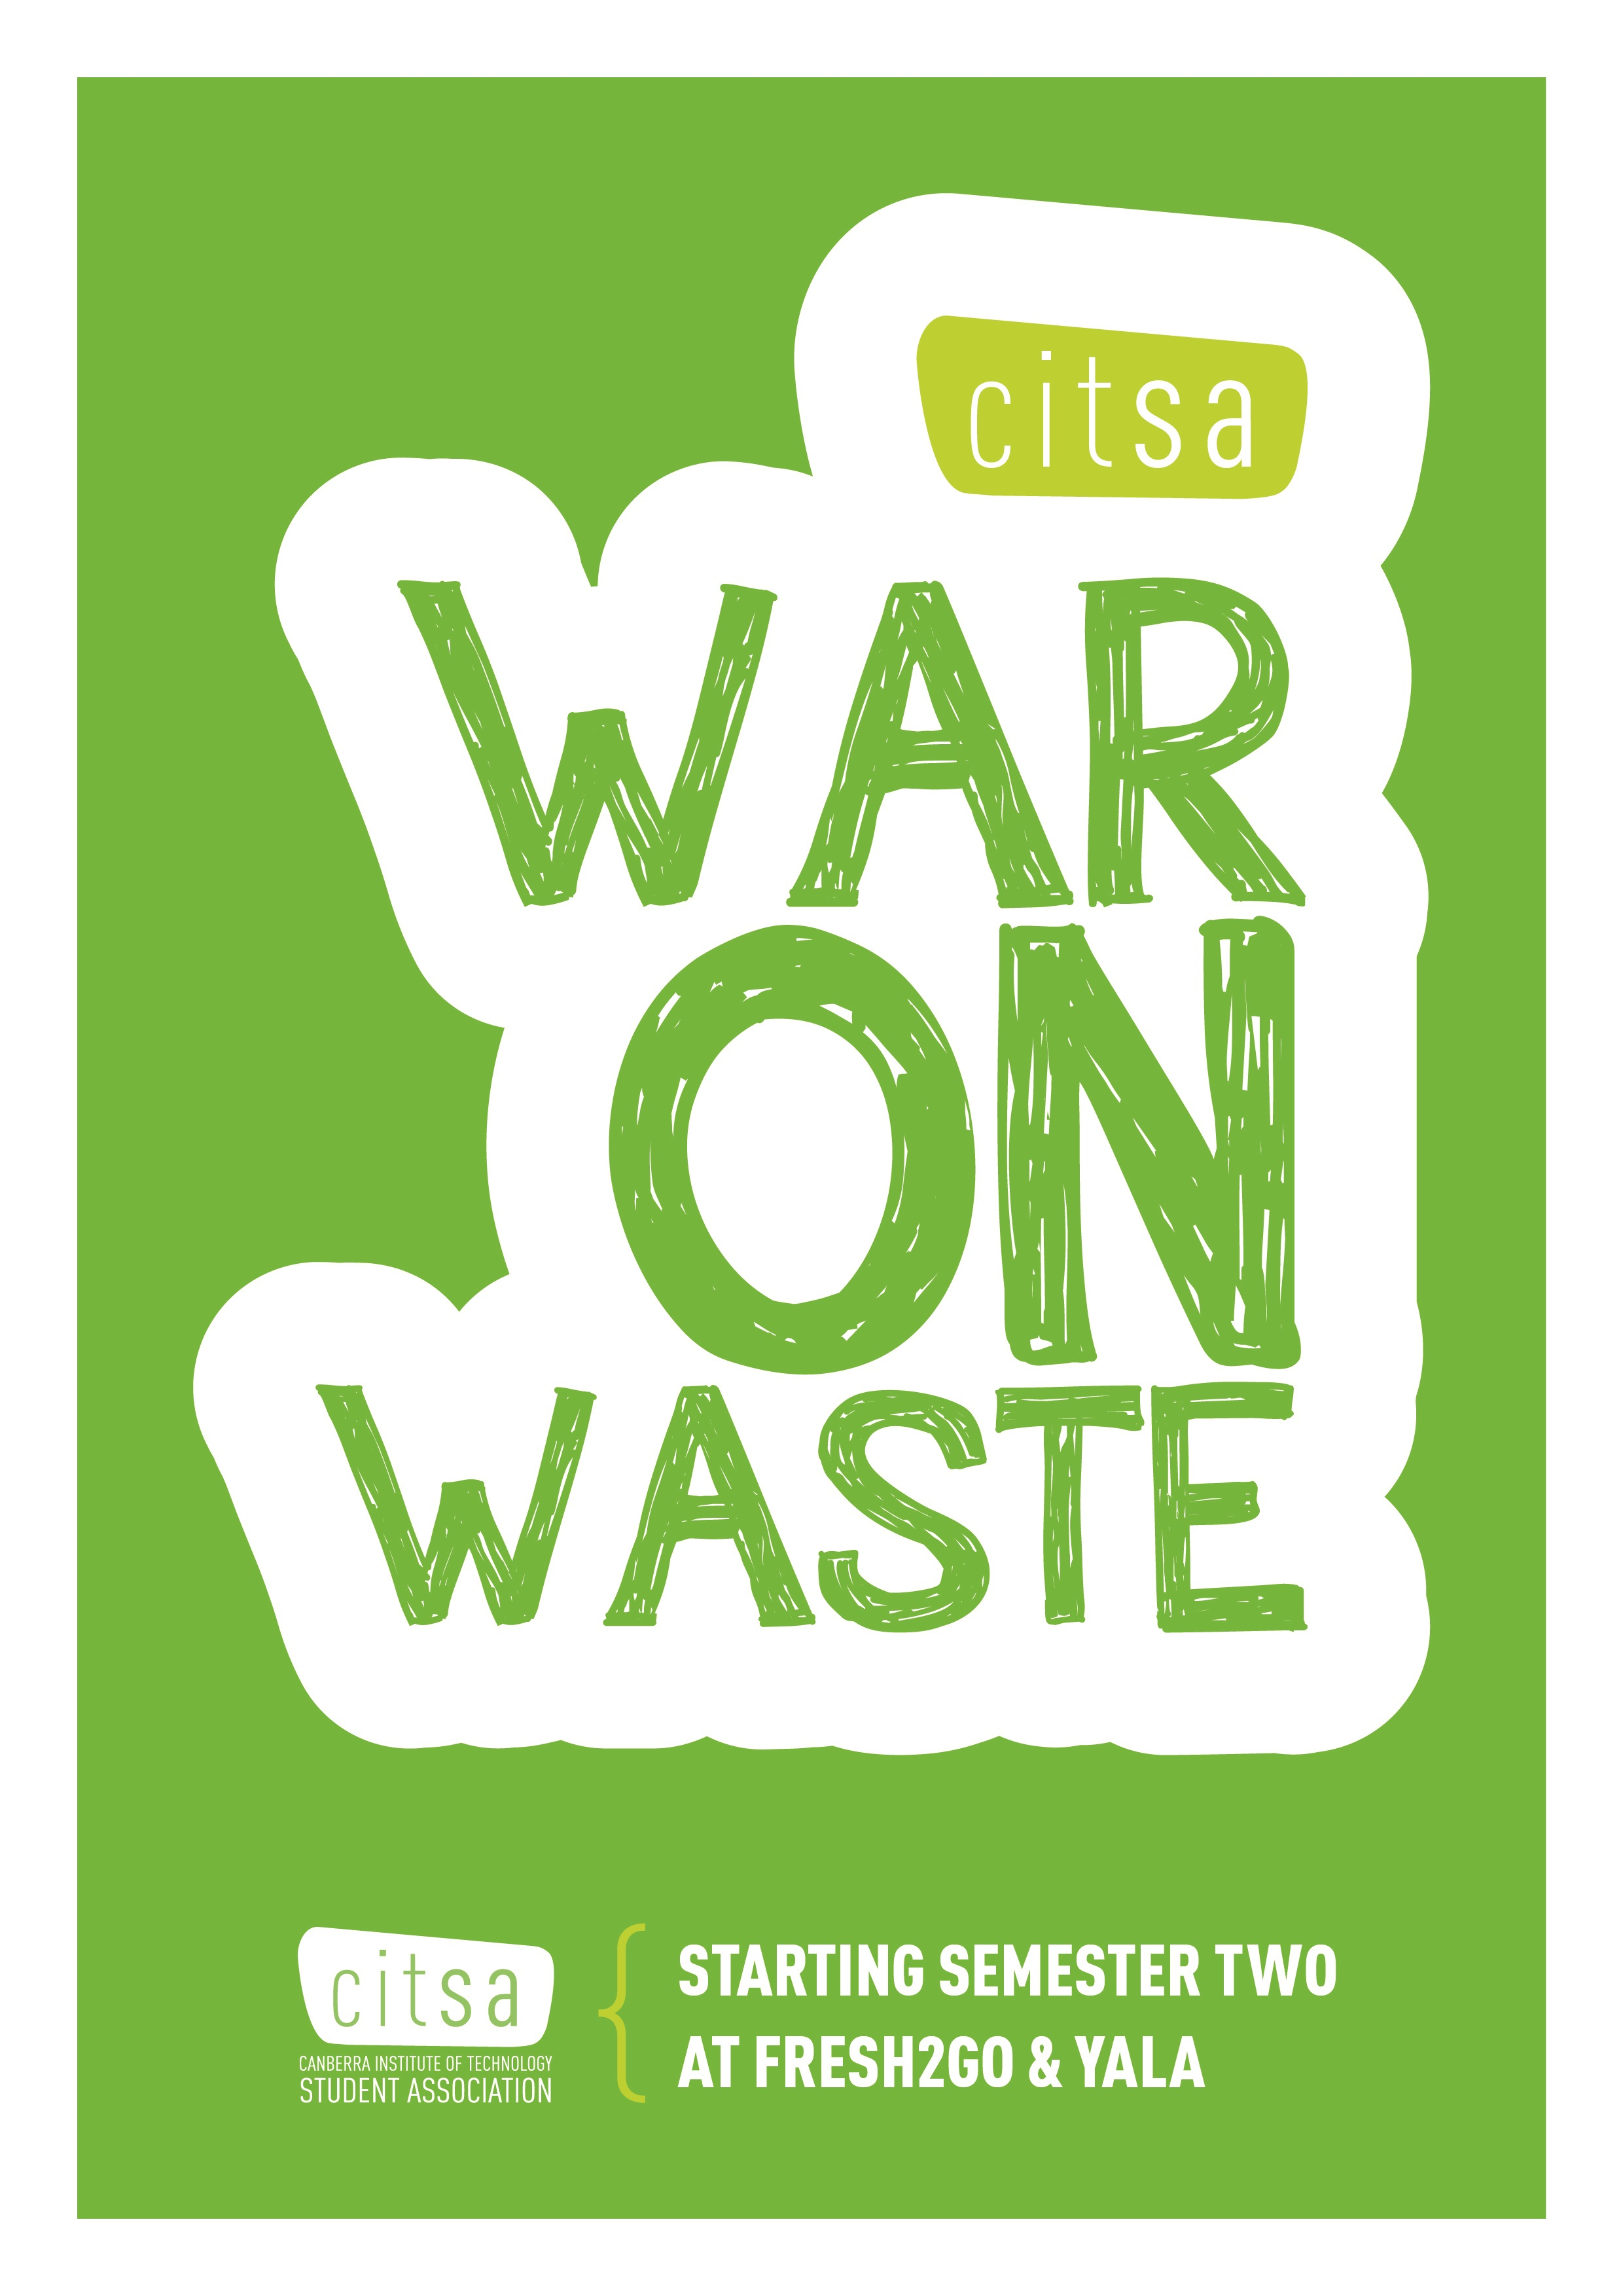 Past events_Waronwaste